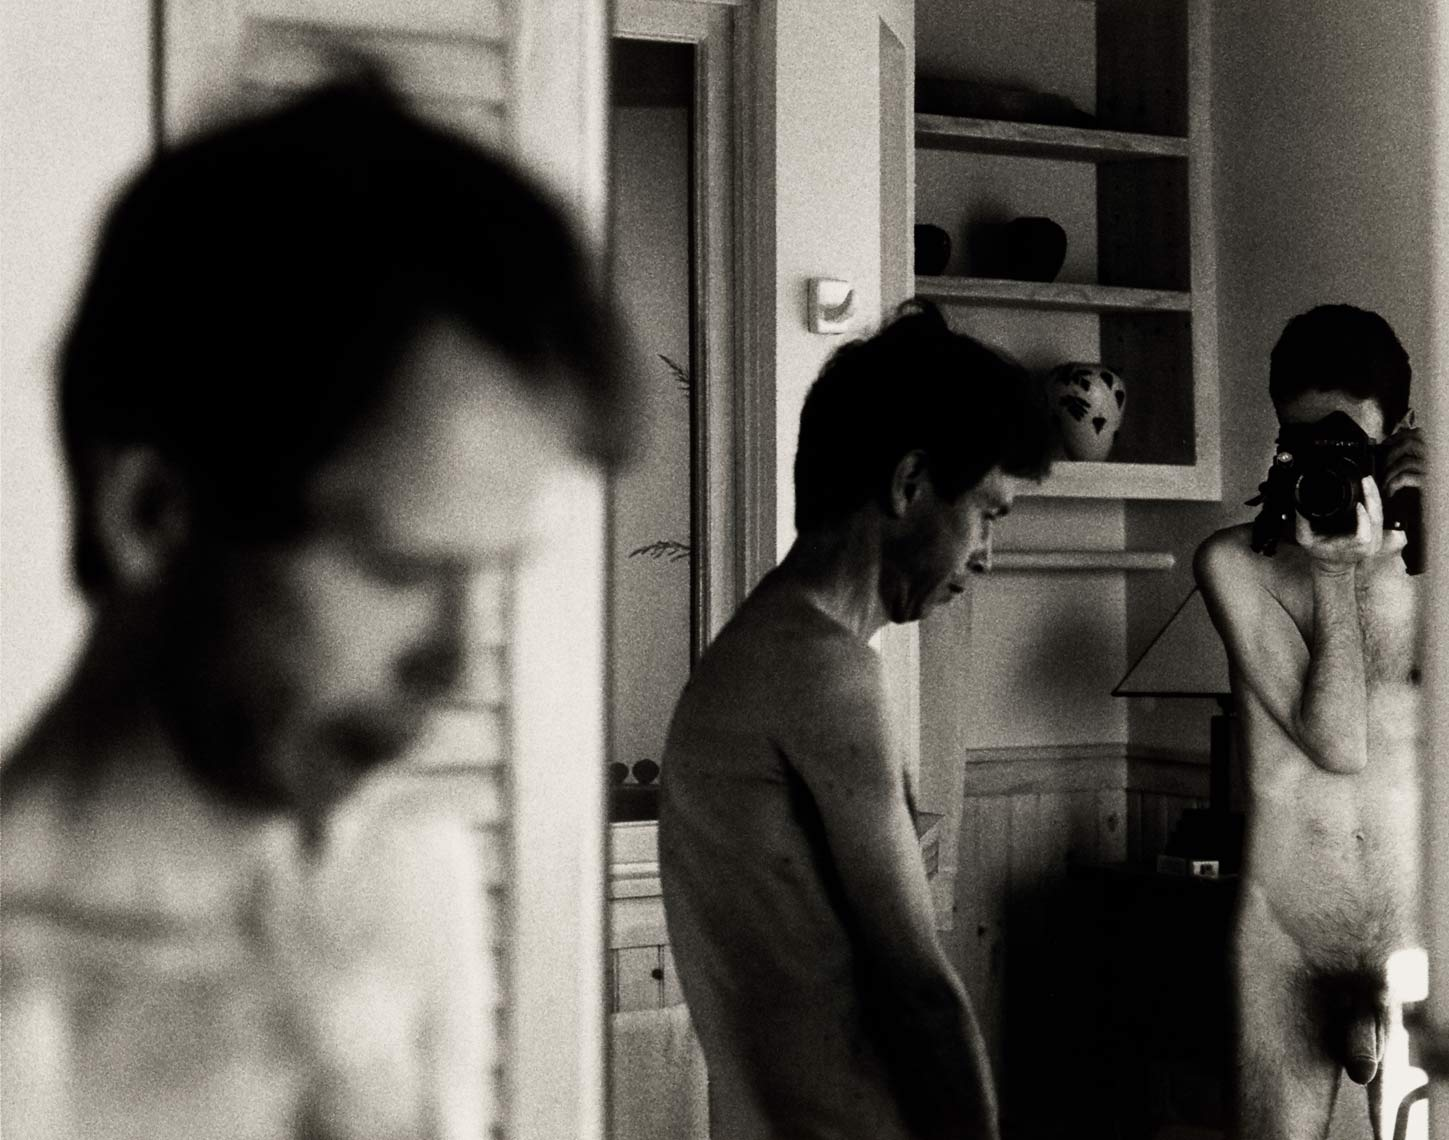 David Lebe; Morning Ritual 27, 1994, black and white photograph about living with AIDS